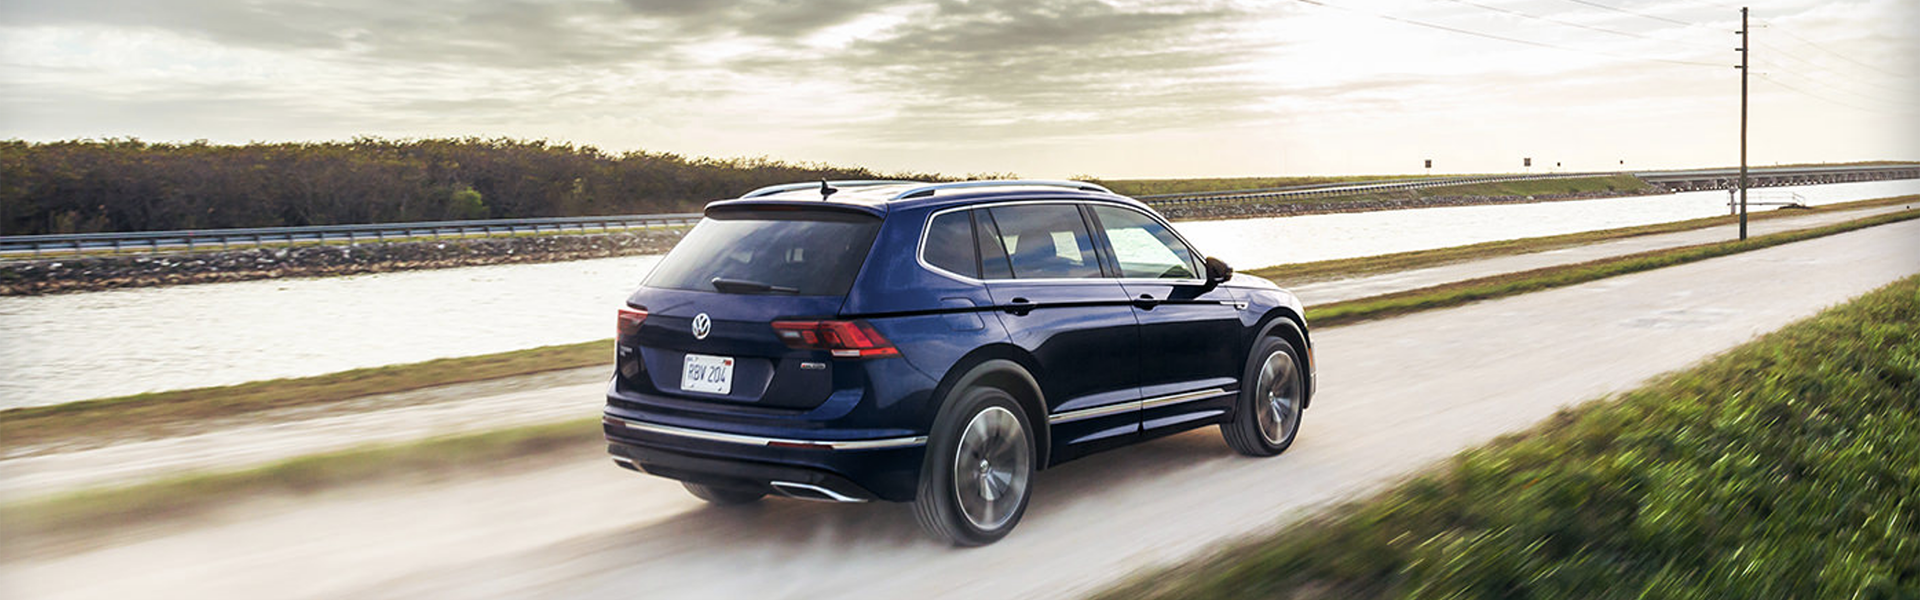 2021 VW Tiguan, the small SUV big on space, power, and innovation.